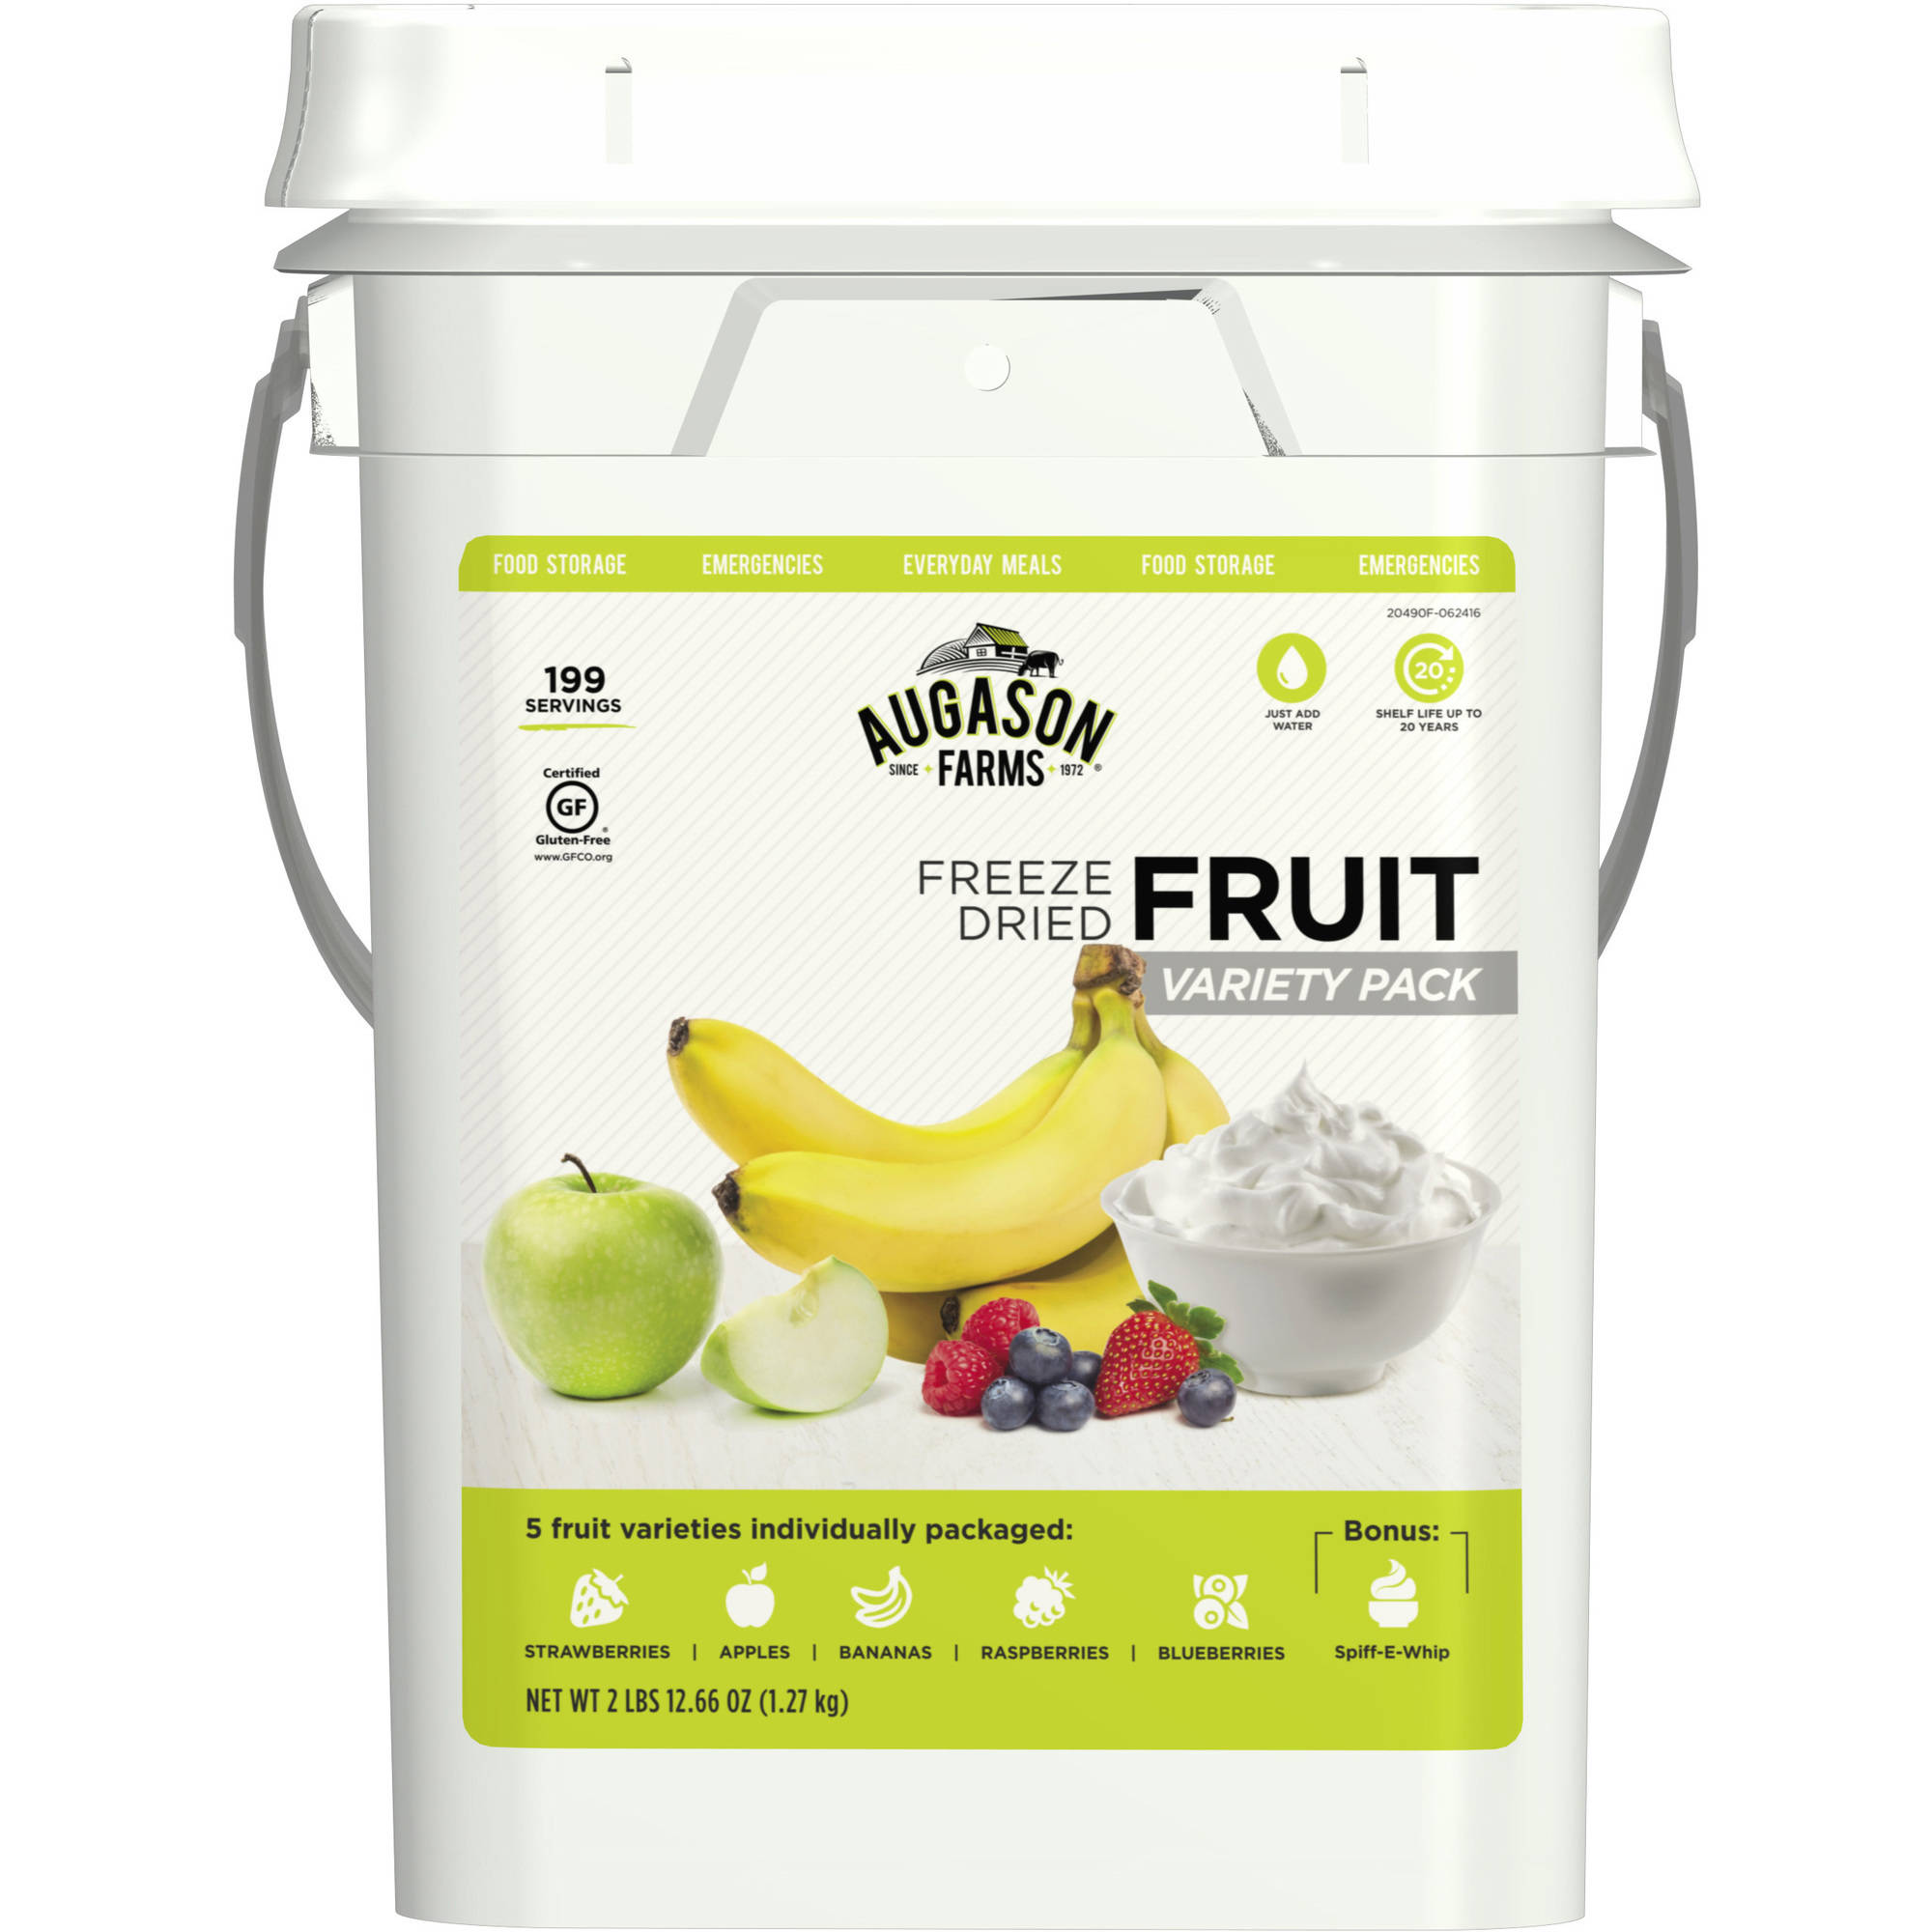 Augason Farms Freeze Dried Fruit Variety Pack, 44.66 oz by Blue Chip Group